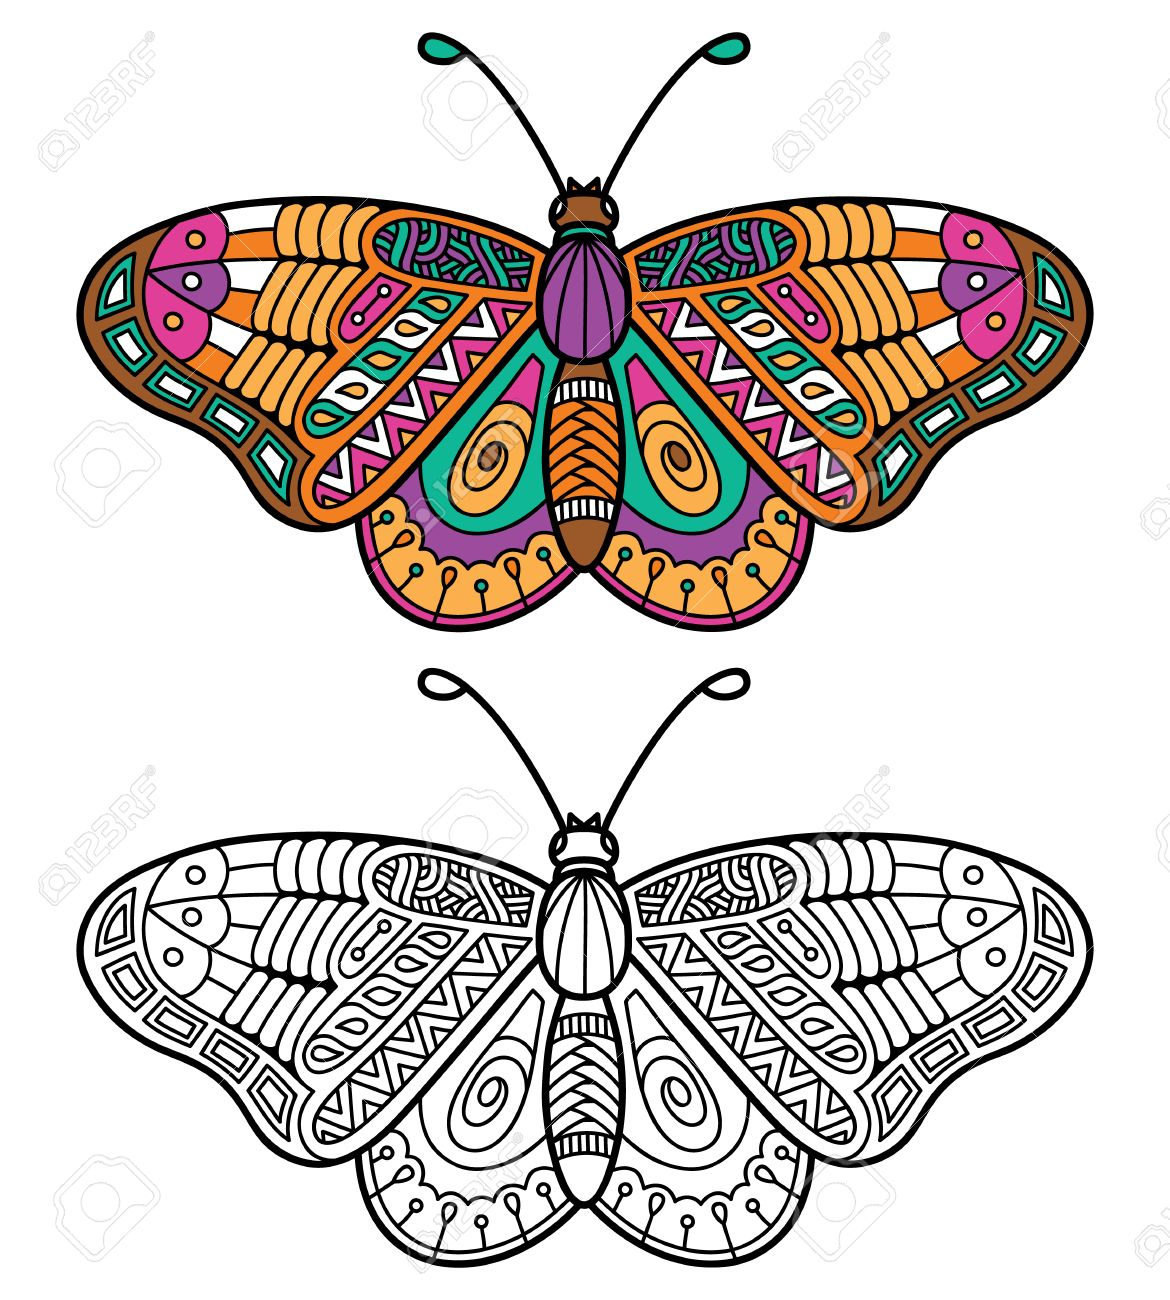 Uncategorized Images Of Butterflies For Children cute butterfly vector illustration of ornate zentangle for children or adult anti